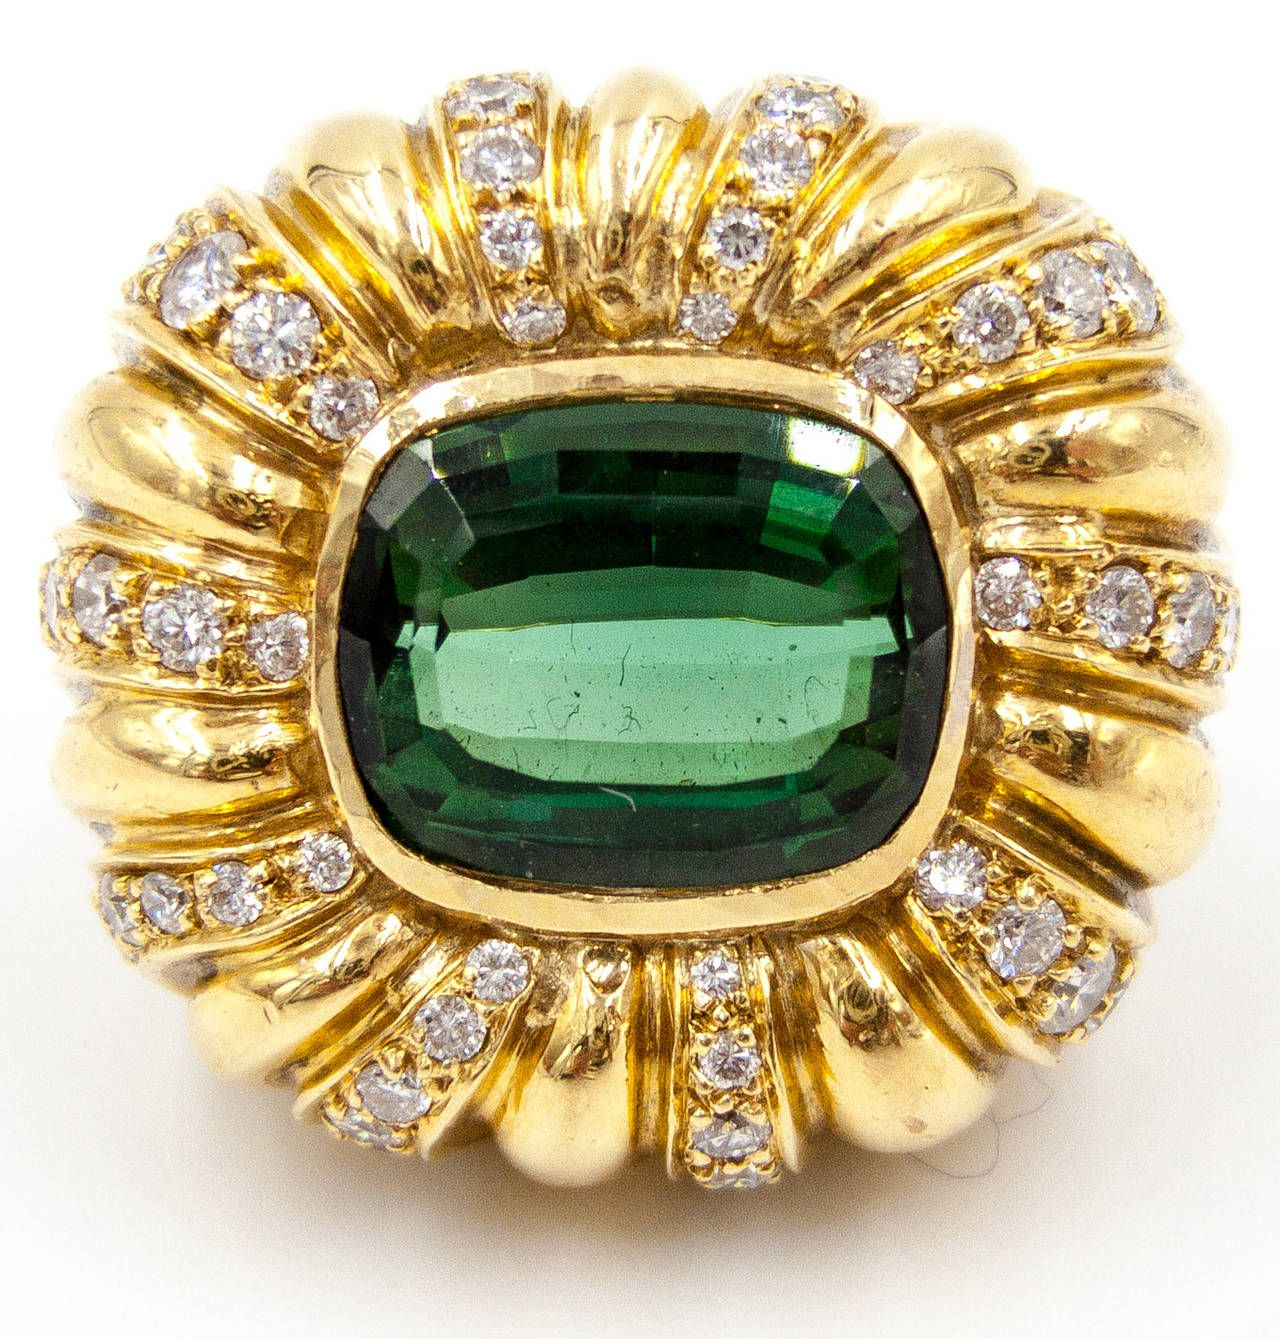 Elegant Tourmaline Diamond Gold Turban Style Cocktail Ring | From a unique collection of vintage dome rings at https://www.1stdibs.com/jewelry/rings/dome-rings/